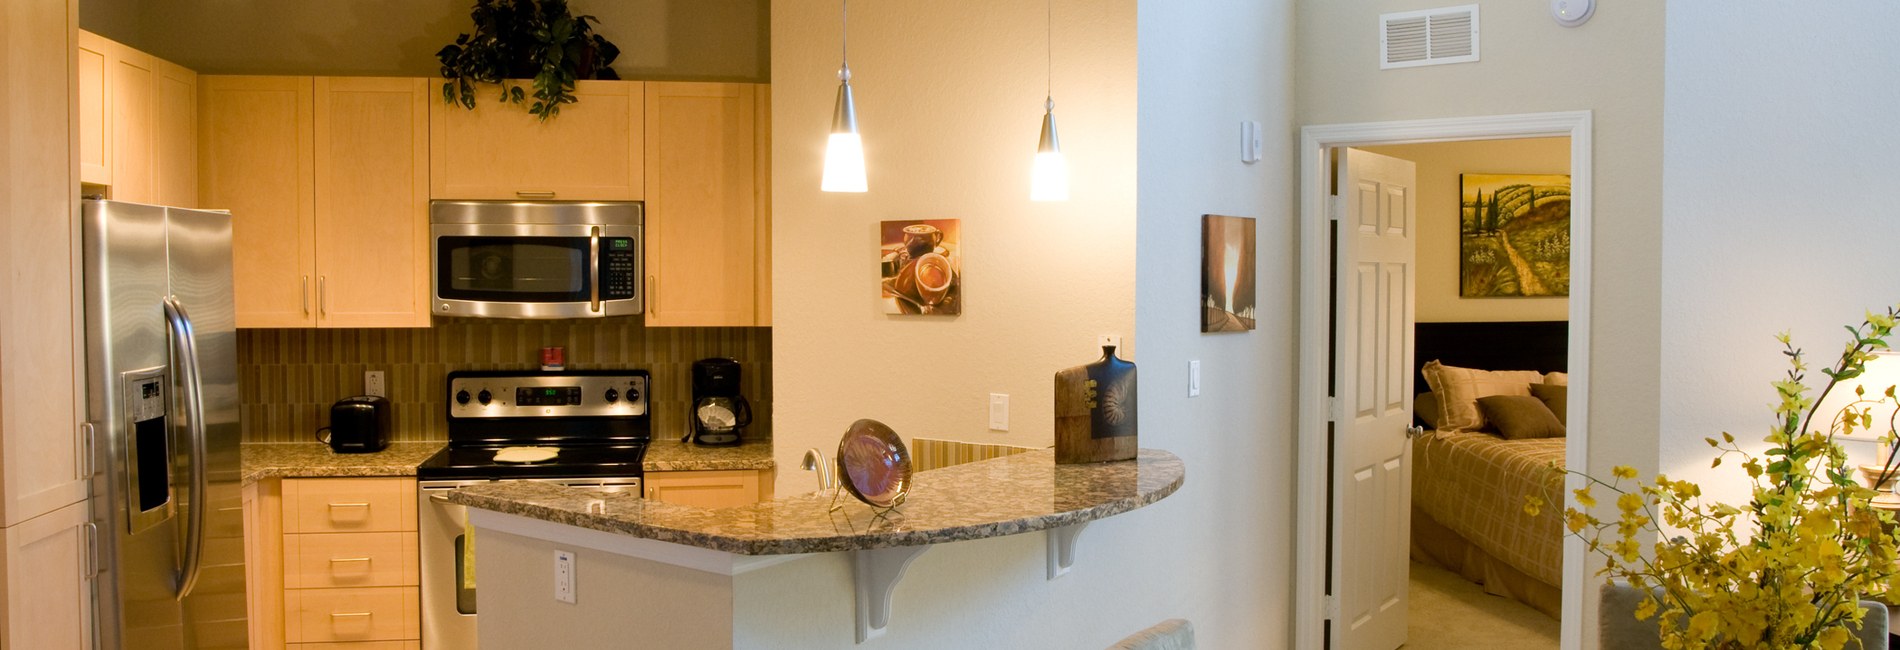 Long Term Housing Solutions In Tampa